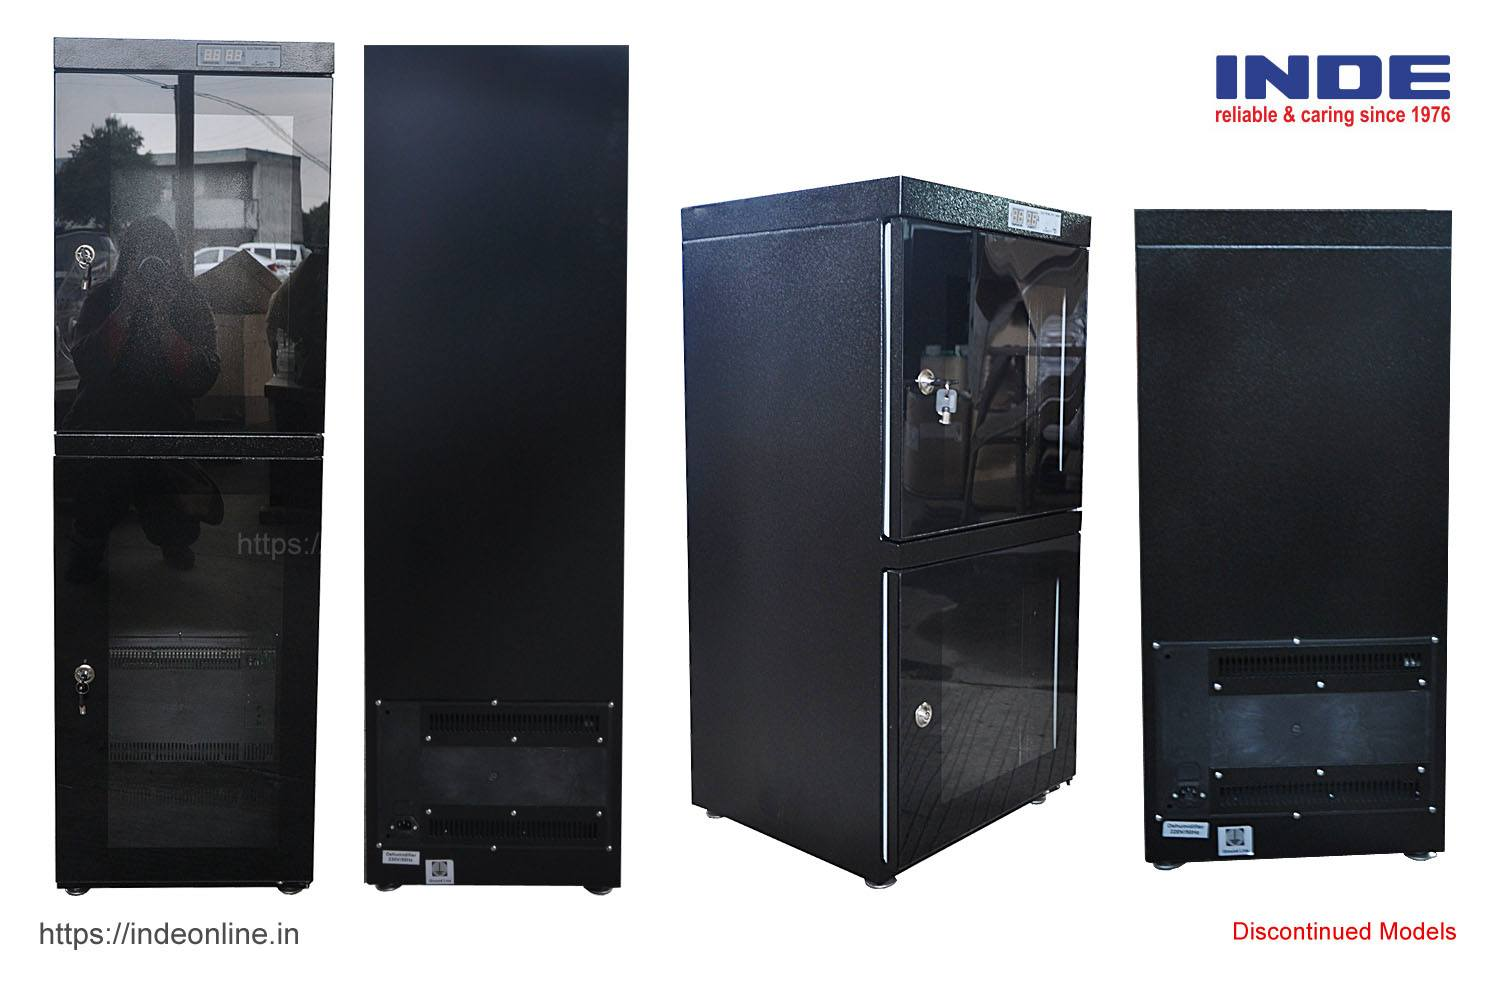 Dry Cabinets - Discontinued Models